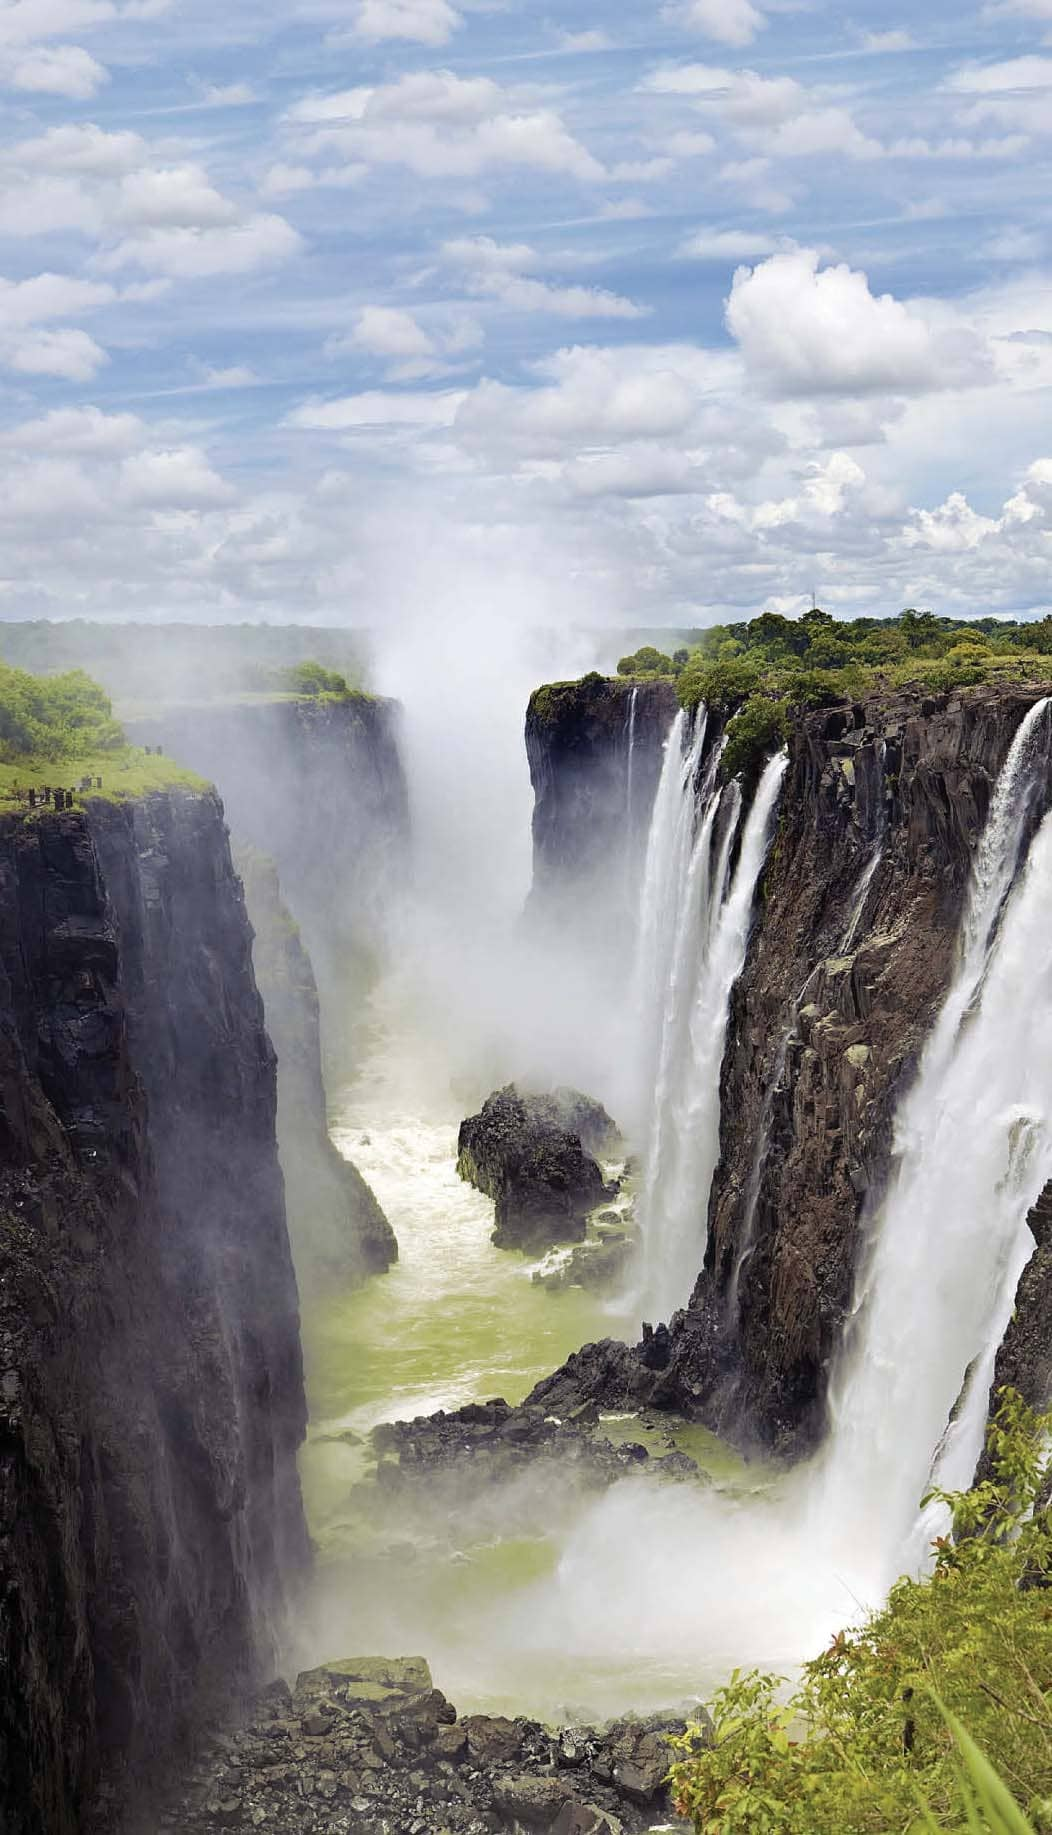 Victoria Falls an angel's delight